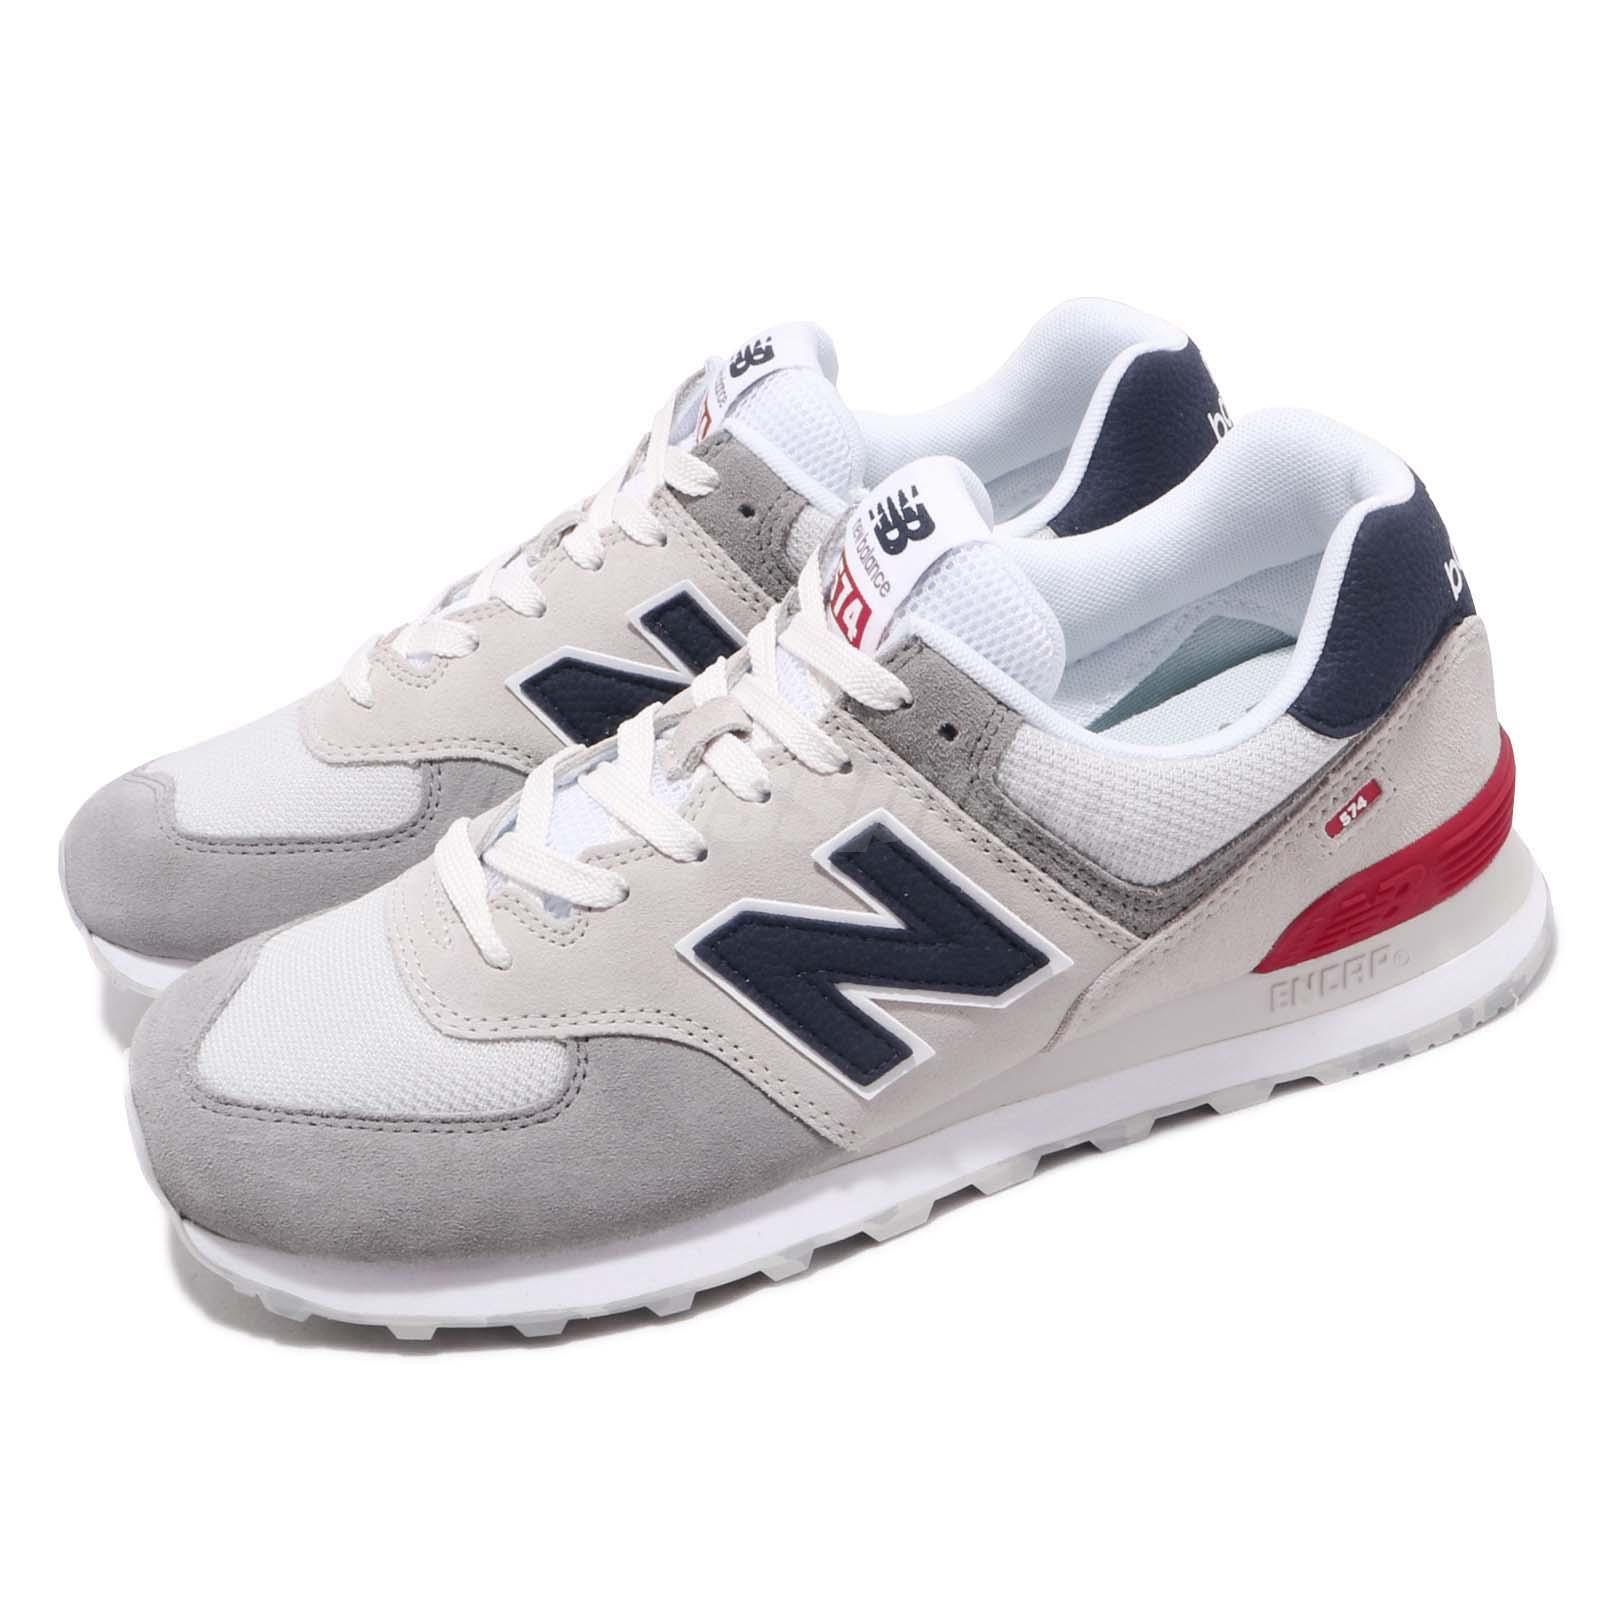 new style 5a24b b33b5 Details about New Balance ML574UJD D Grey Blue Red White Men Running Shoes  Sneakers ML574UJDD